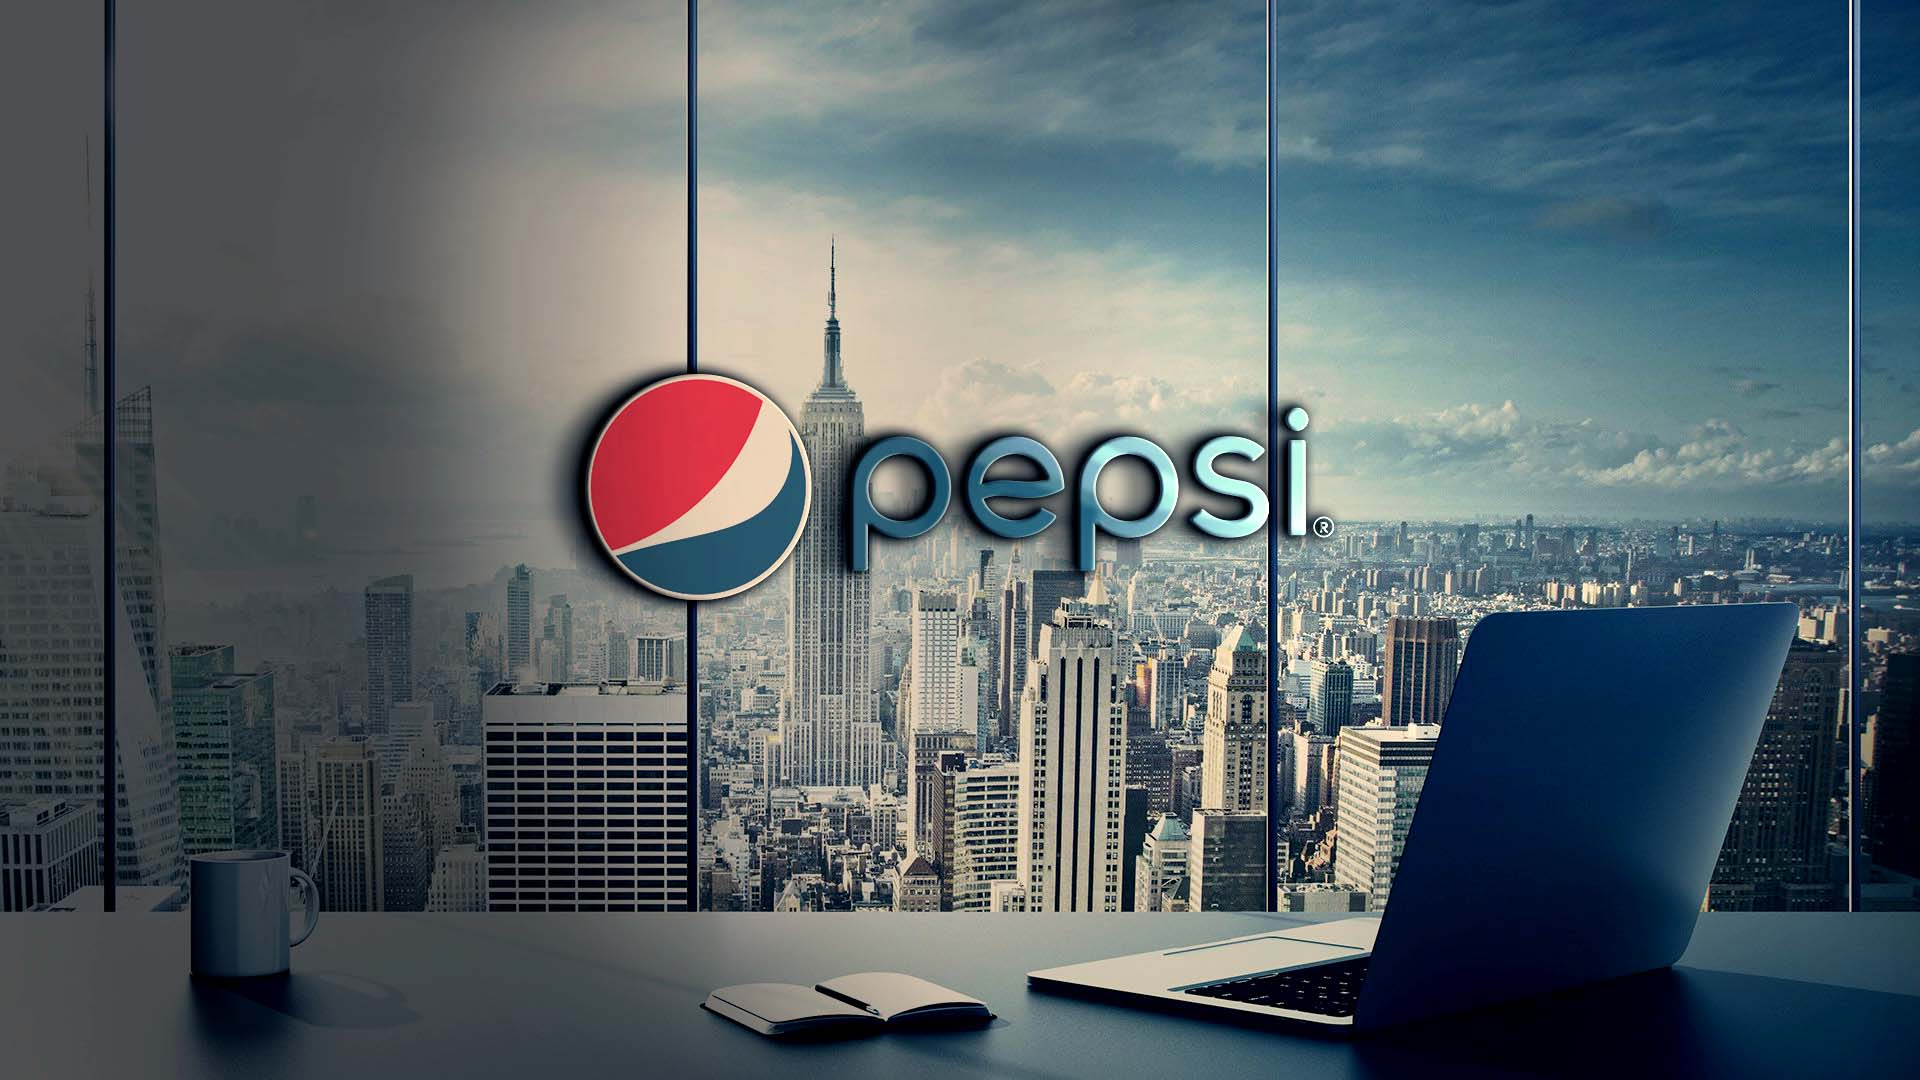 Pepsi Logo on 3d glass wall mockup